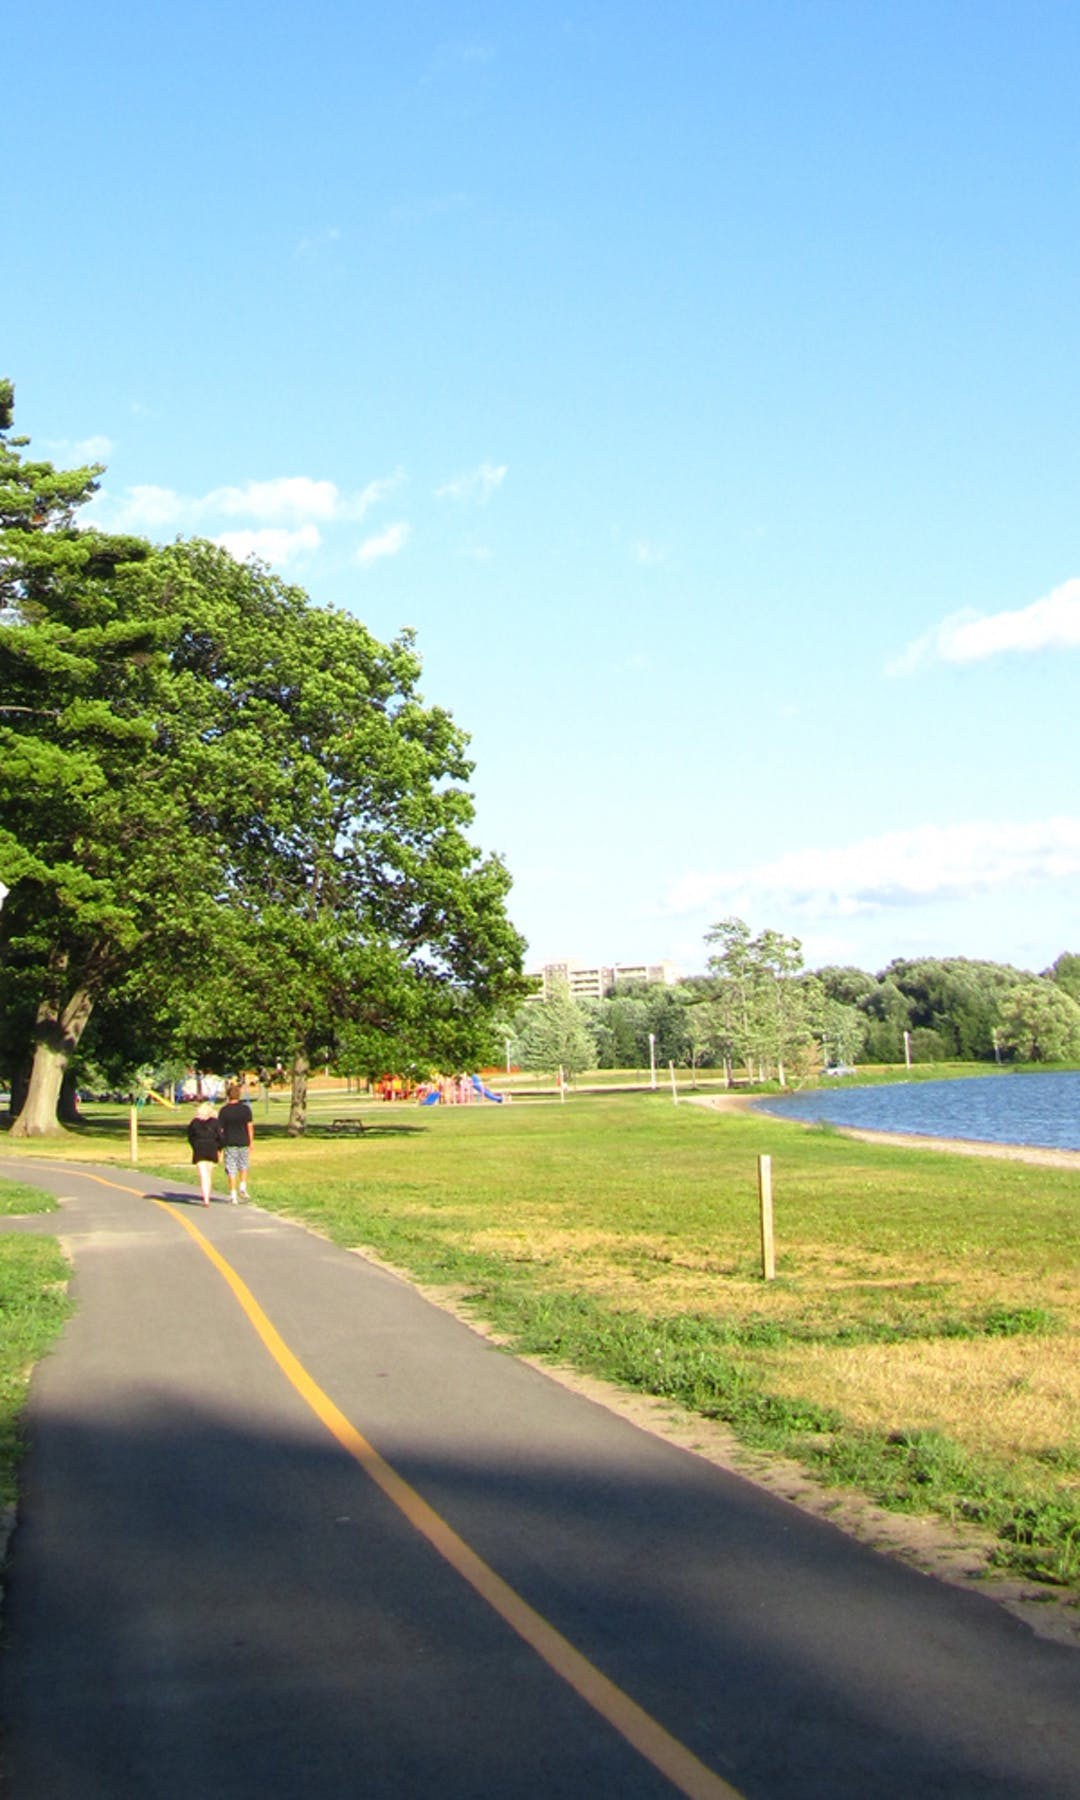 A couple walking along a paved trail running through a park along the water. A playground can be seen in the distance.